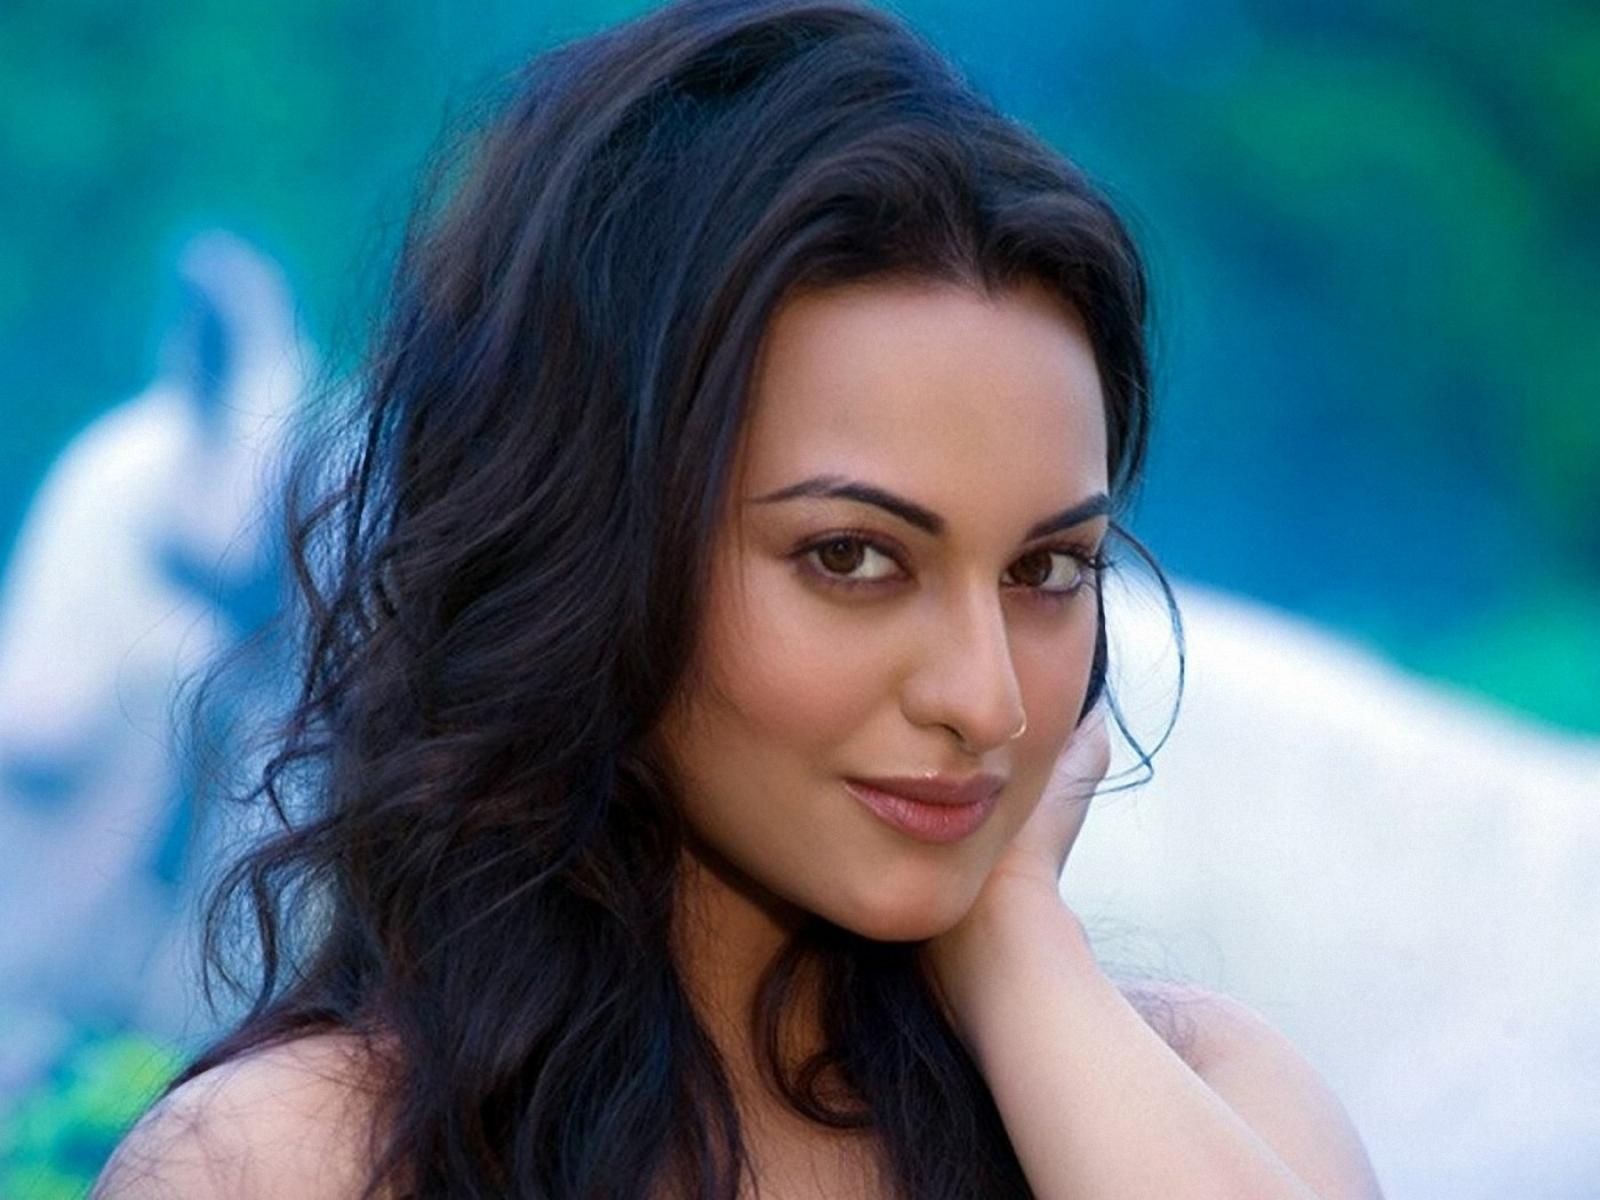 wallpaper gallery sonakshi sinha